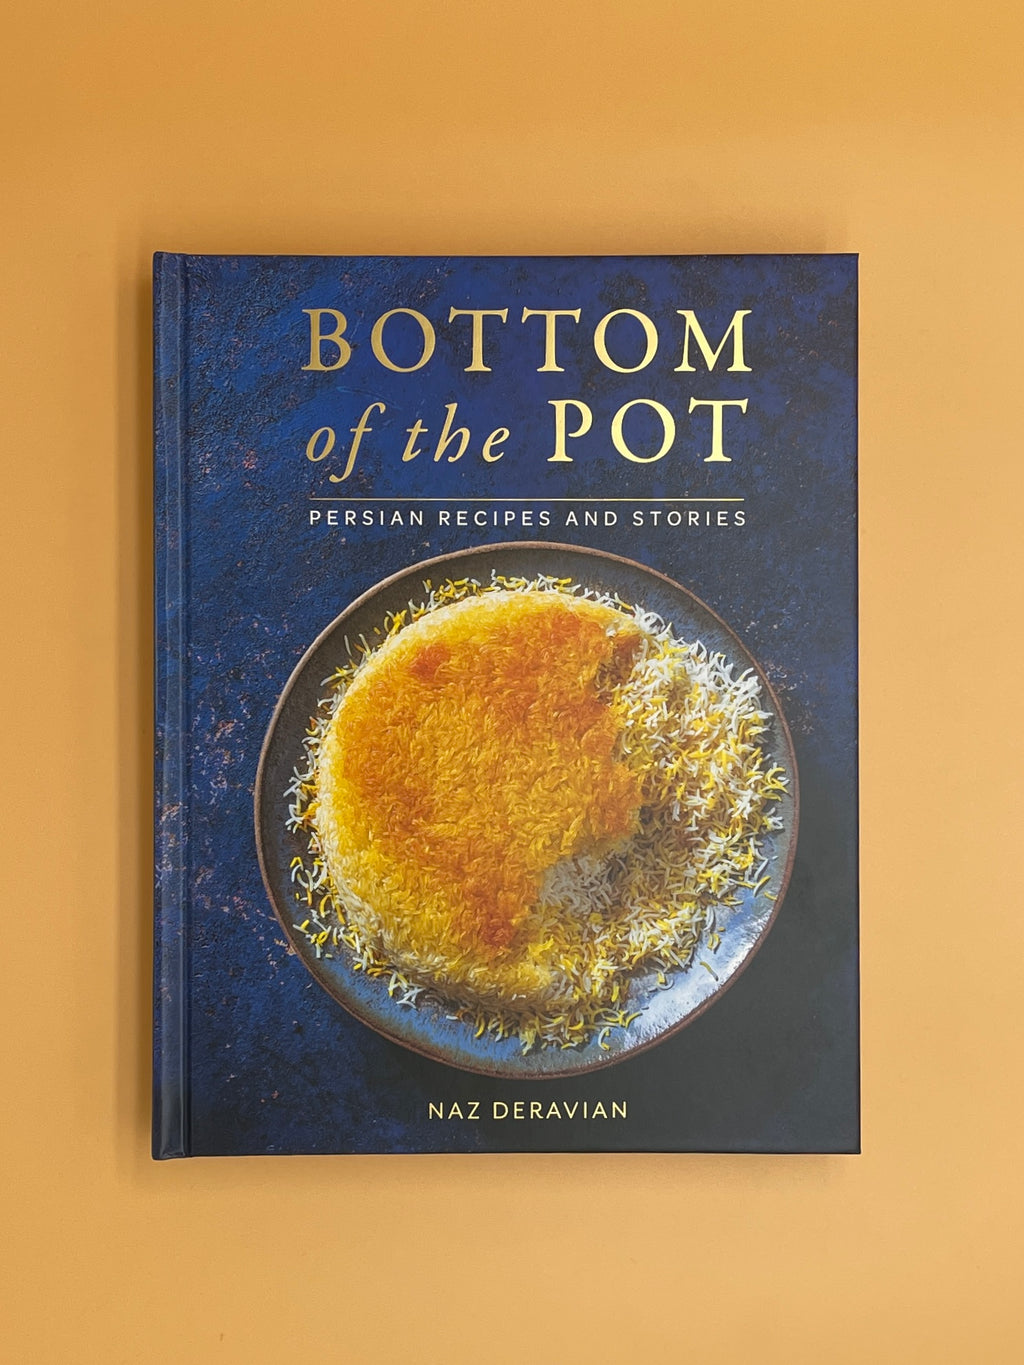 Bottom of the Pot: Persian Recipes and Stories (Naz Deravian)